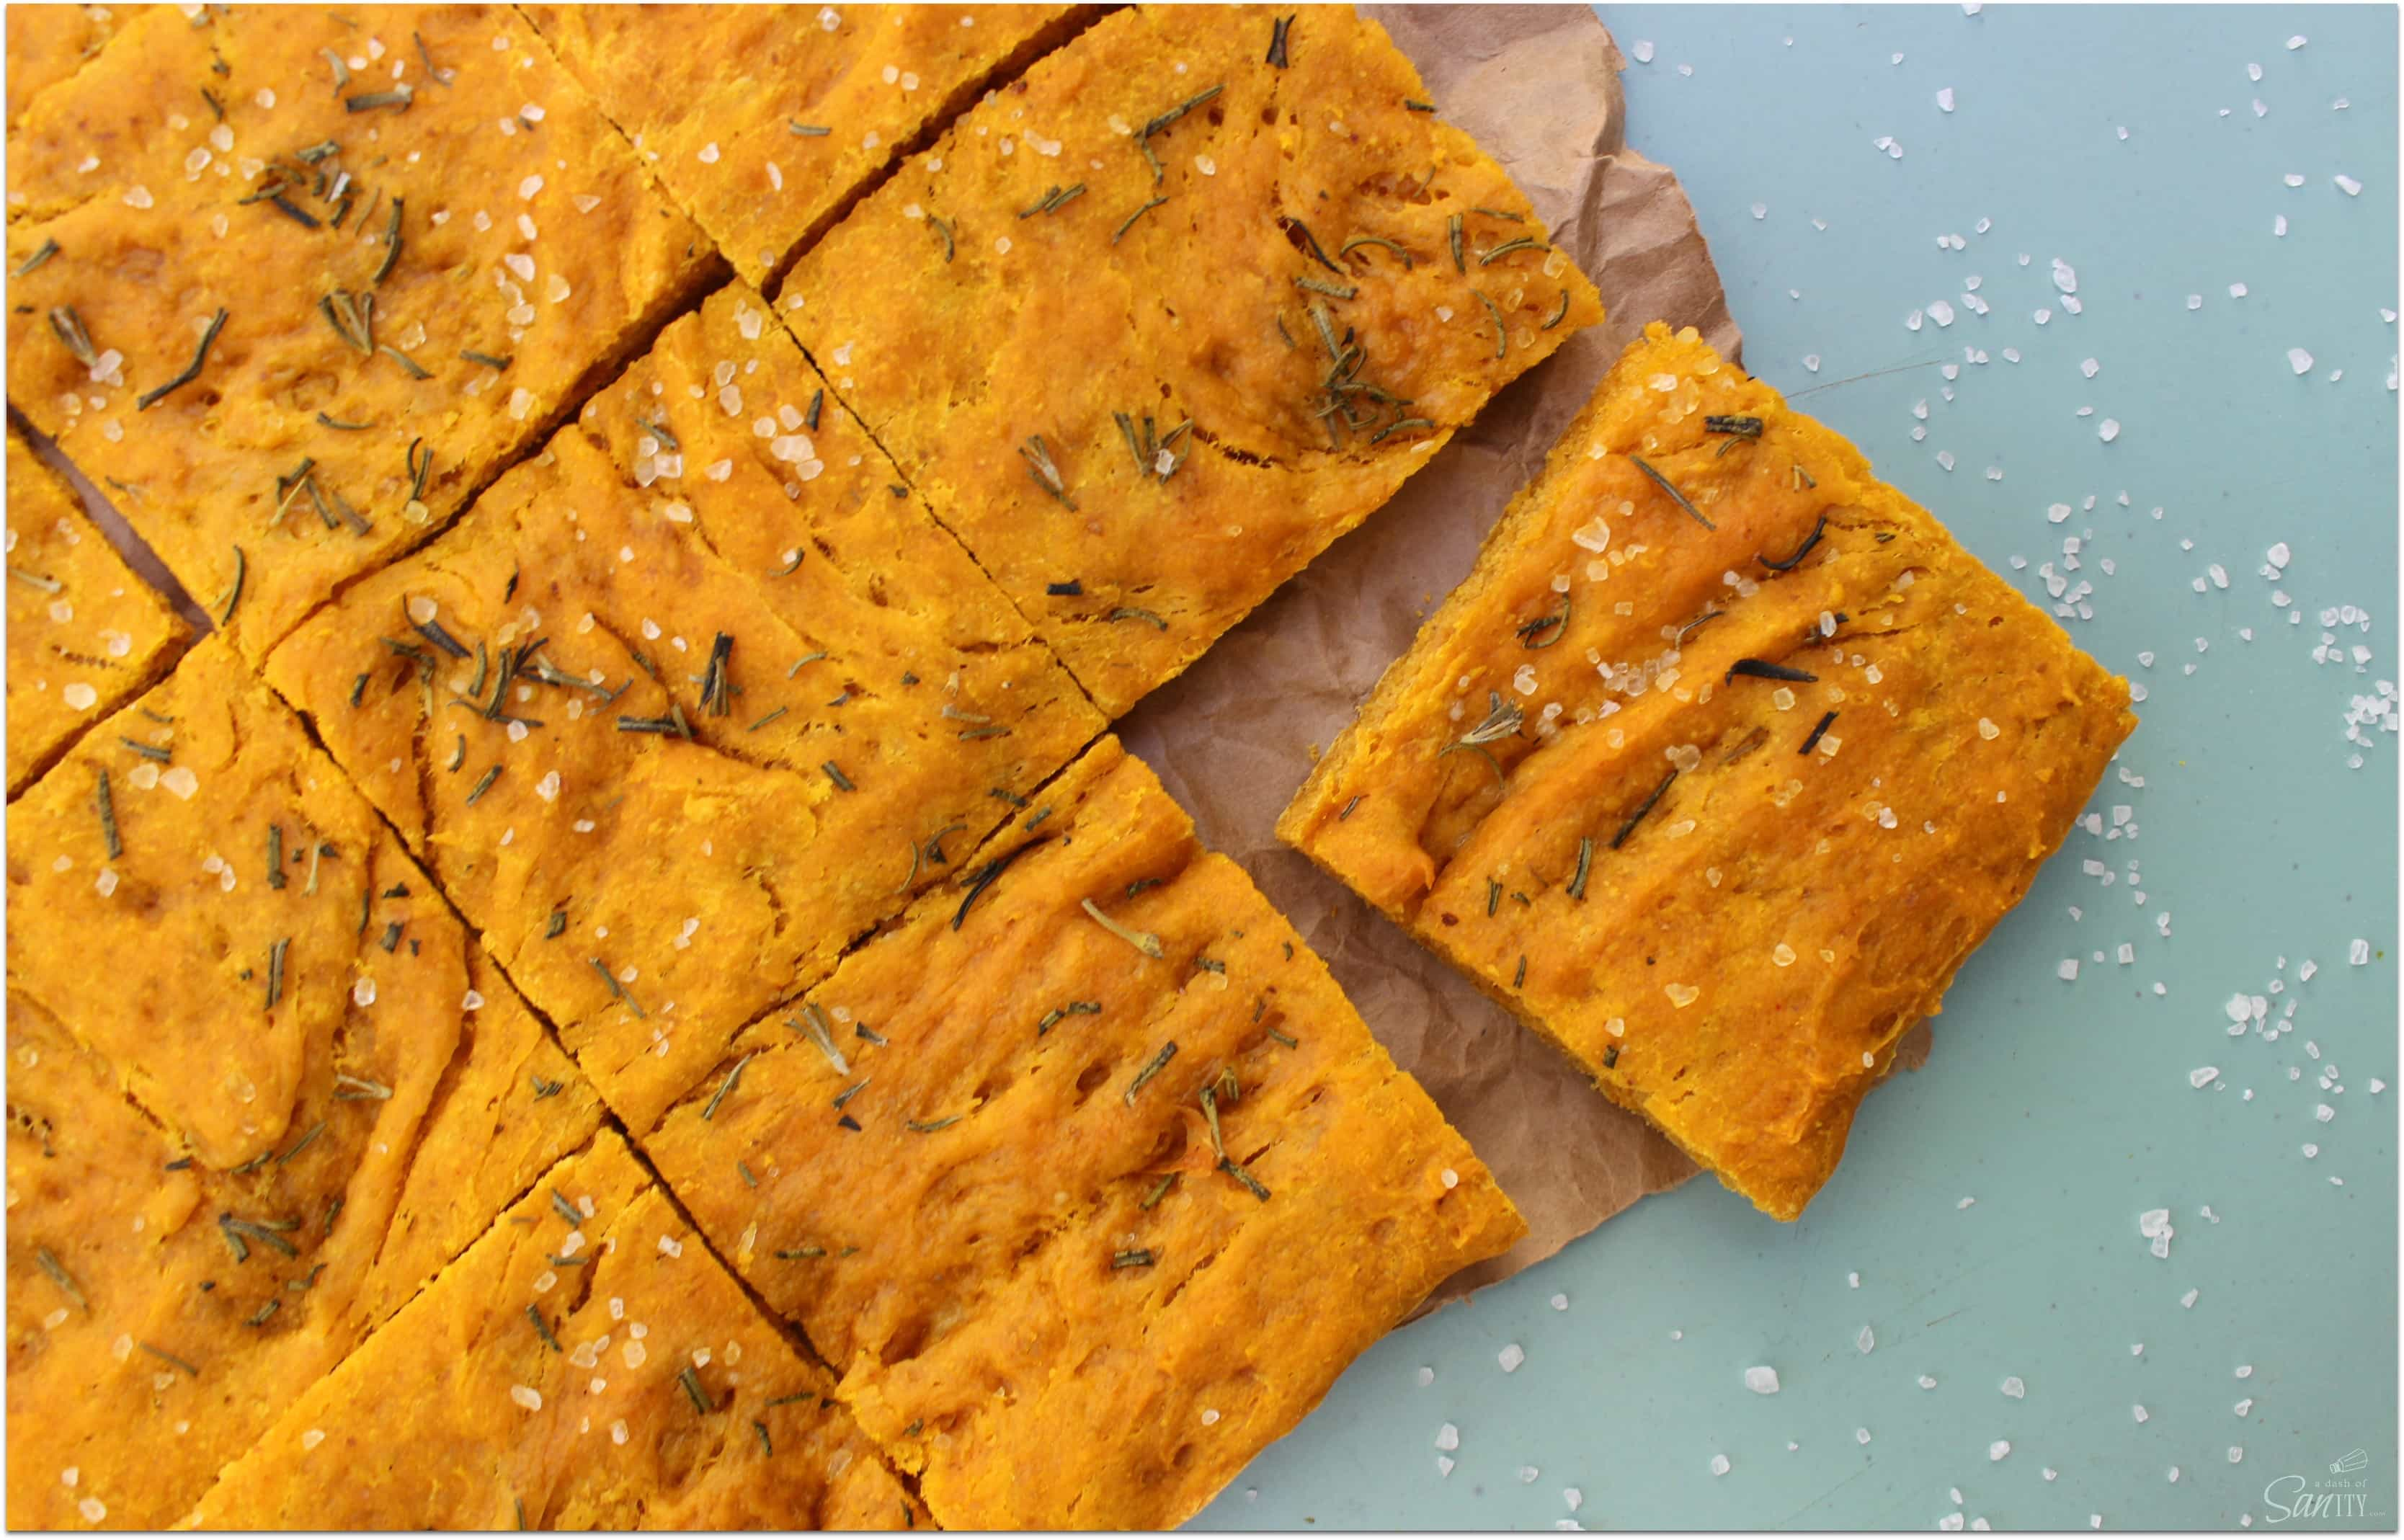 This Pumpkin Focaccia Bread is a savory fall inspired bread made with fresh pumpkin and rosemary. It is an easy to make addition to your holiday spread.